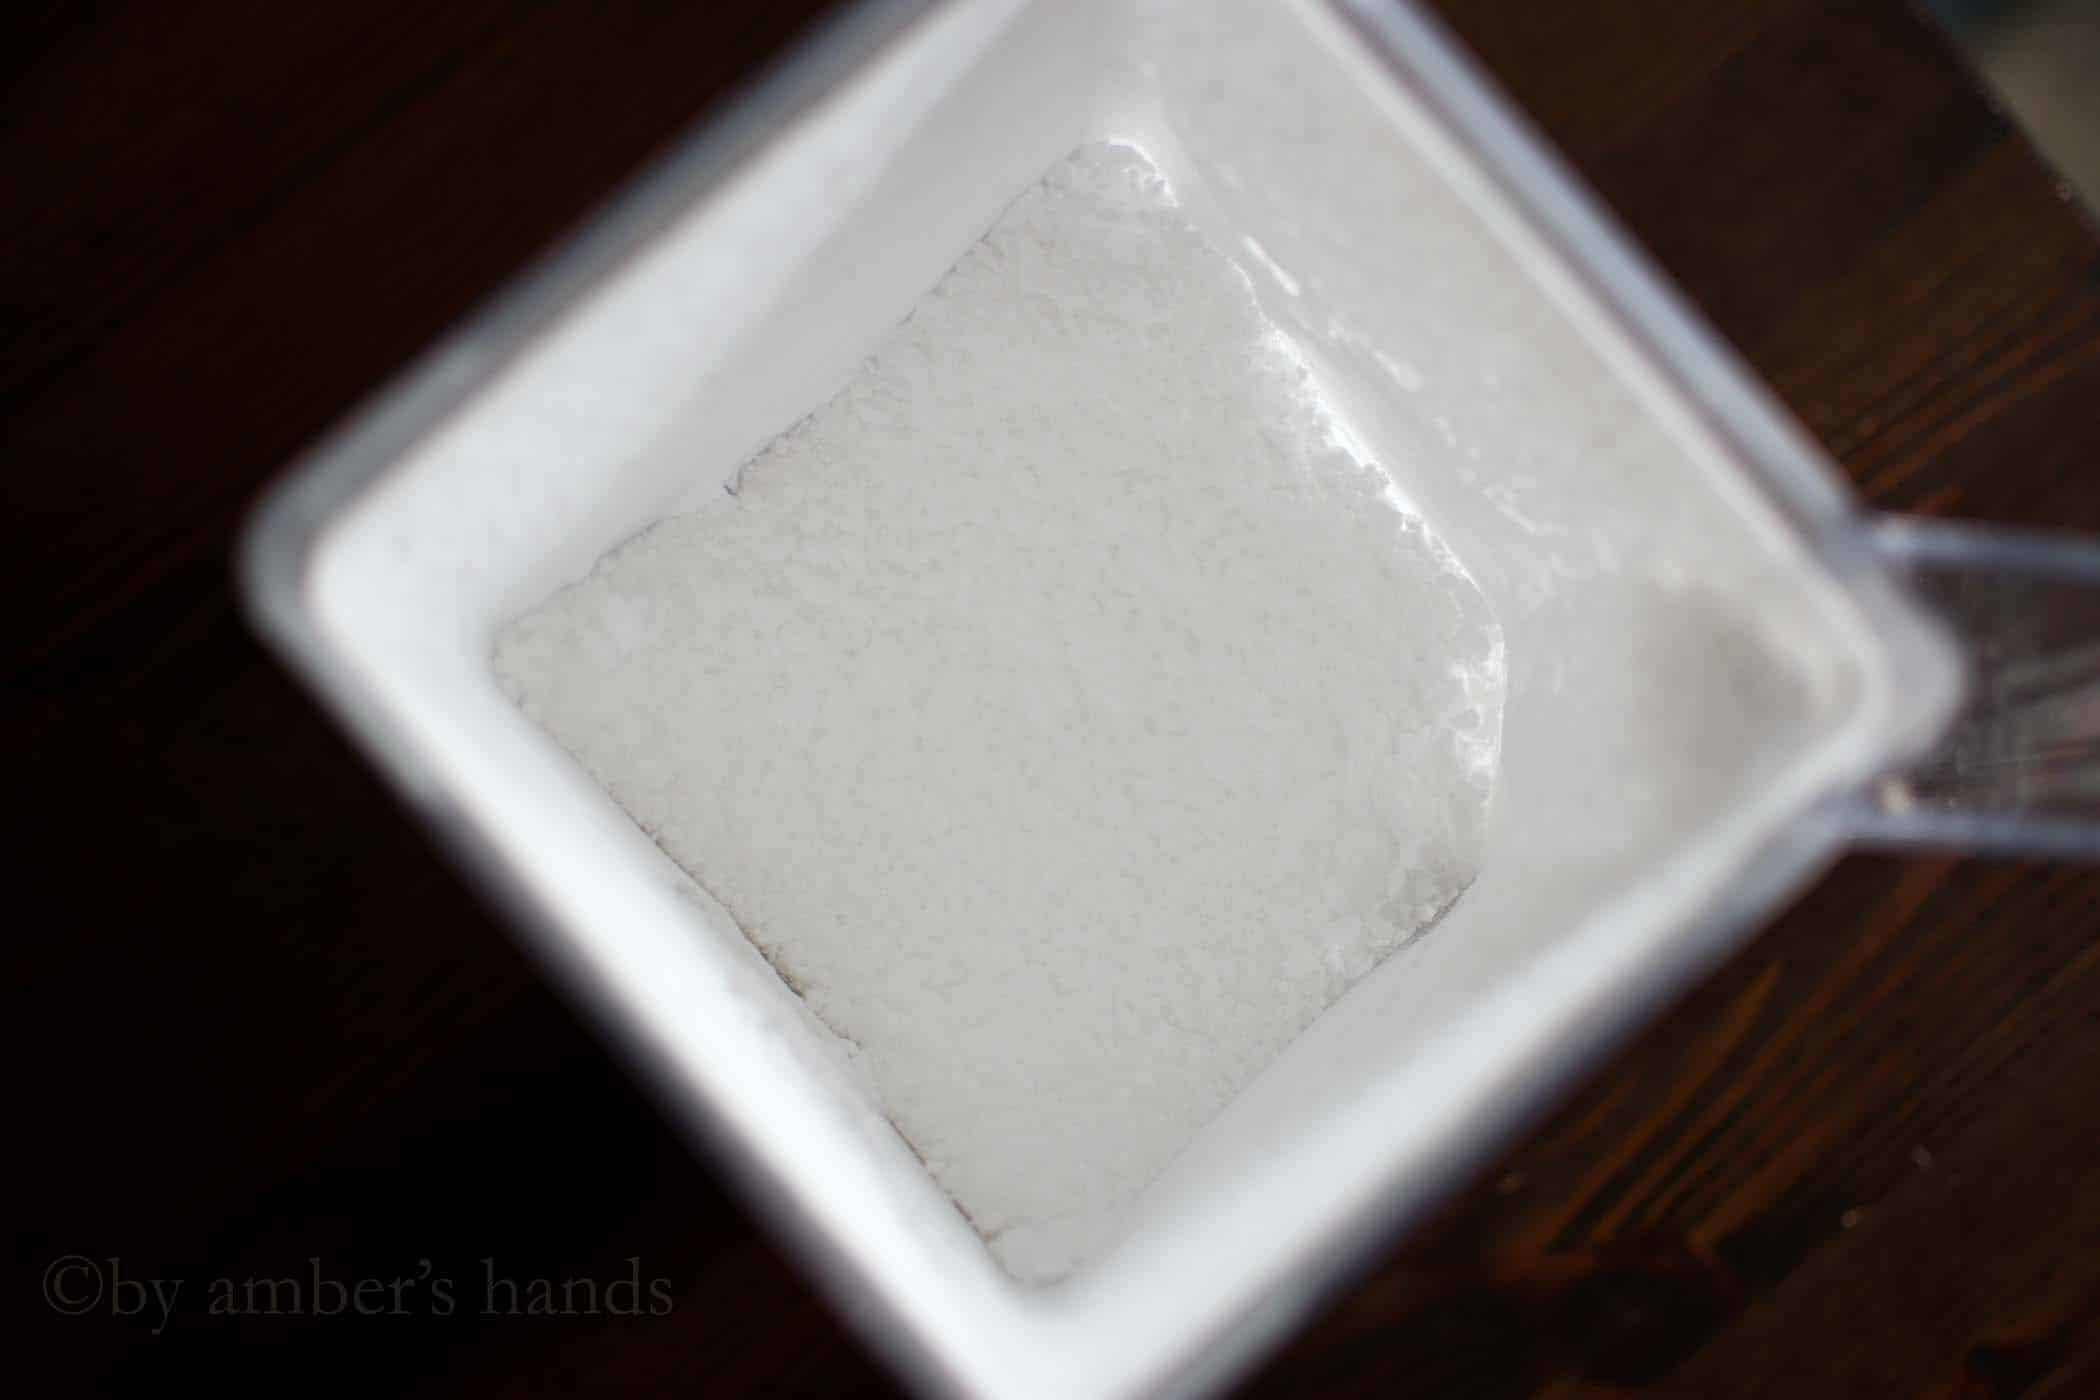 Low Carb Sweetener blend powdered in blender